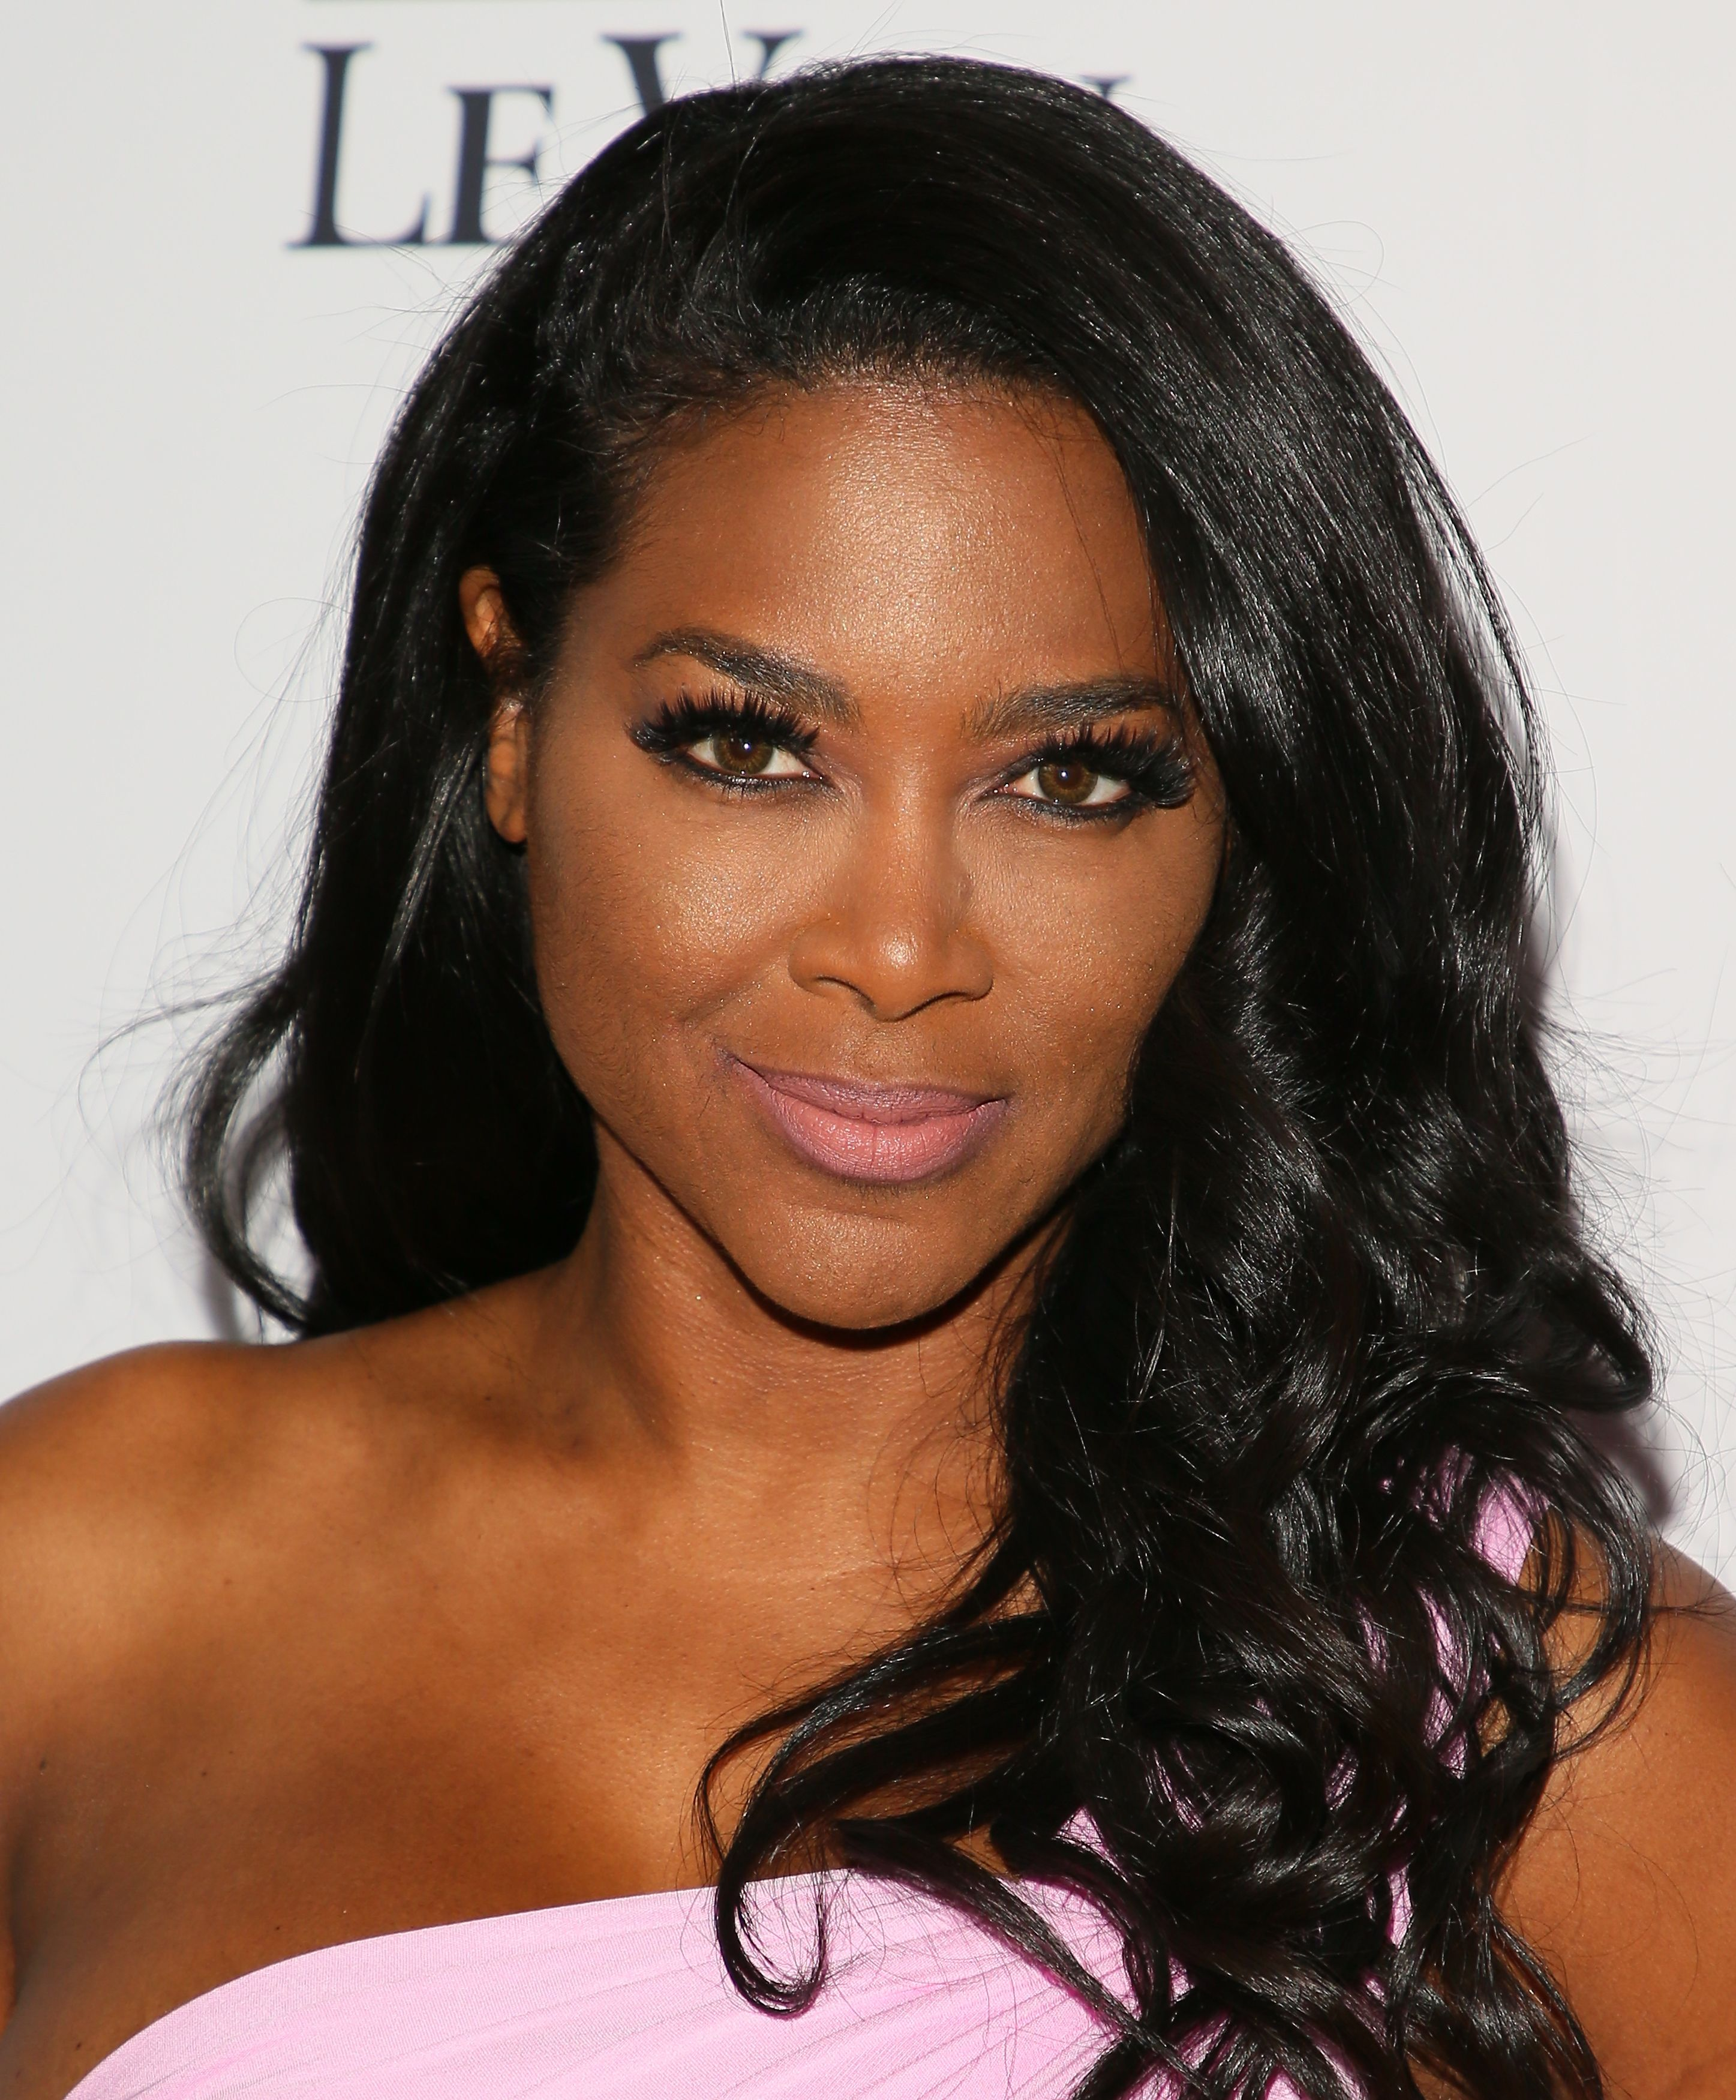 Kenya Moore Shares Photos of Her New Husband From Their